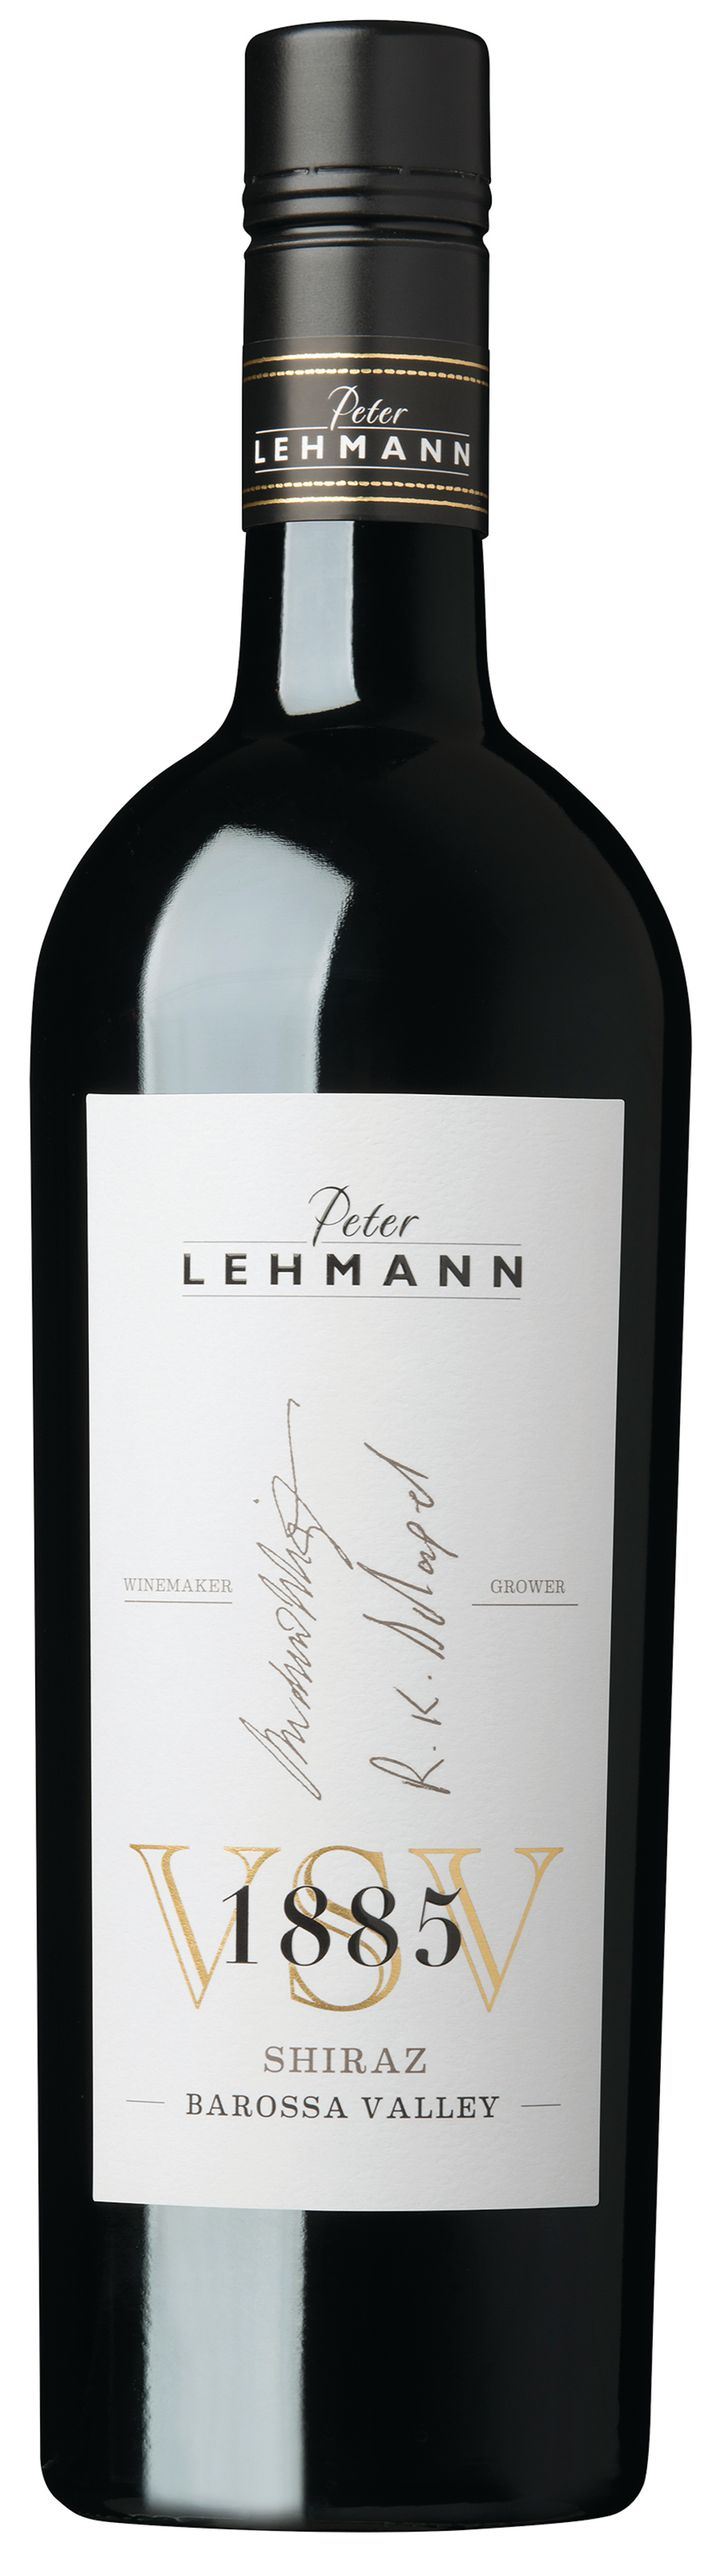 Peter Lehmann VSV 1885 Barossa Shiraz 2014 Land: Australien, Barossa Valley | Producent: Peter Lehmann | Druvor: Shiraz | Vol: 75cl | Alk: 14,5% | Art nr: 92301 | Pris: 429kr | Antal flaskor: 240 | Lansering: 20 november 2015